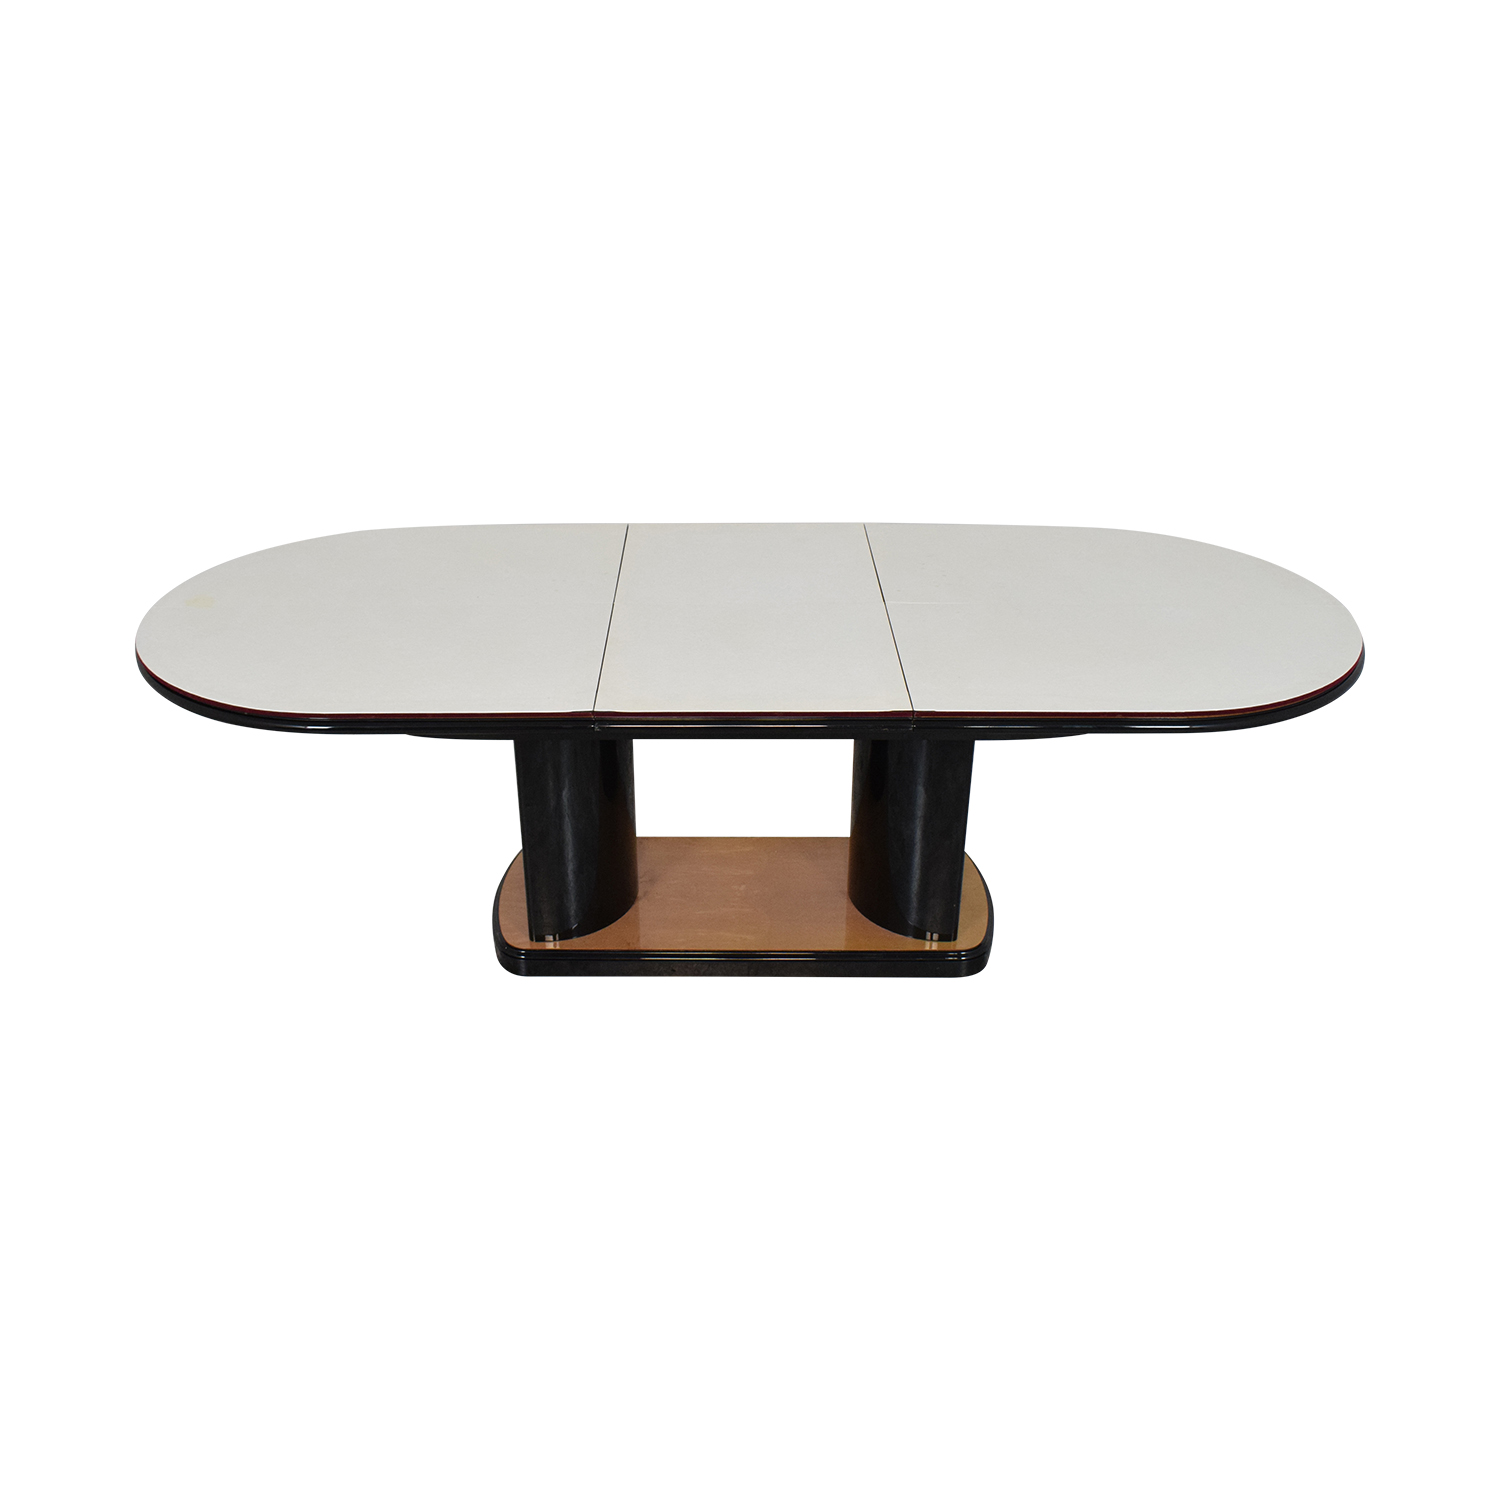 Roma Furniture Roma Imported Dining Table second hand